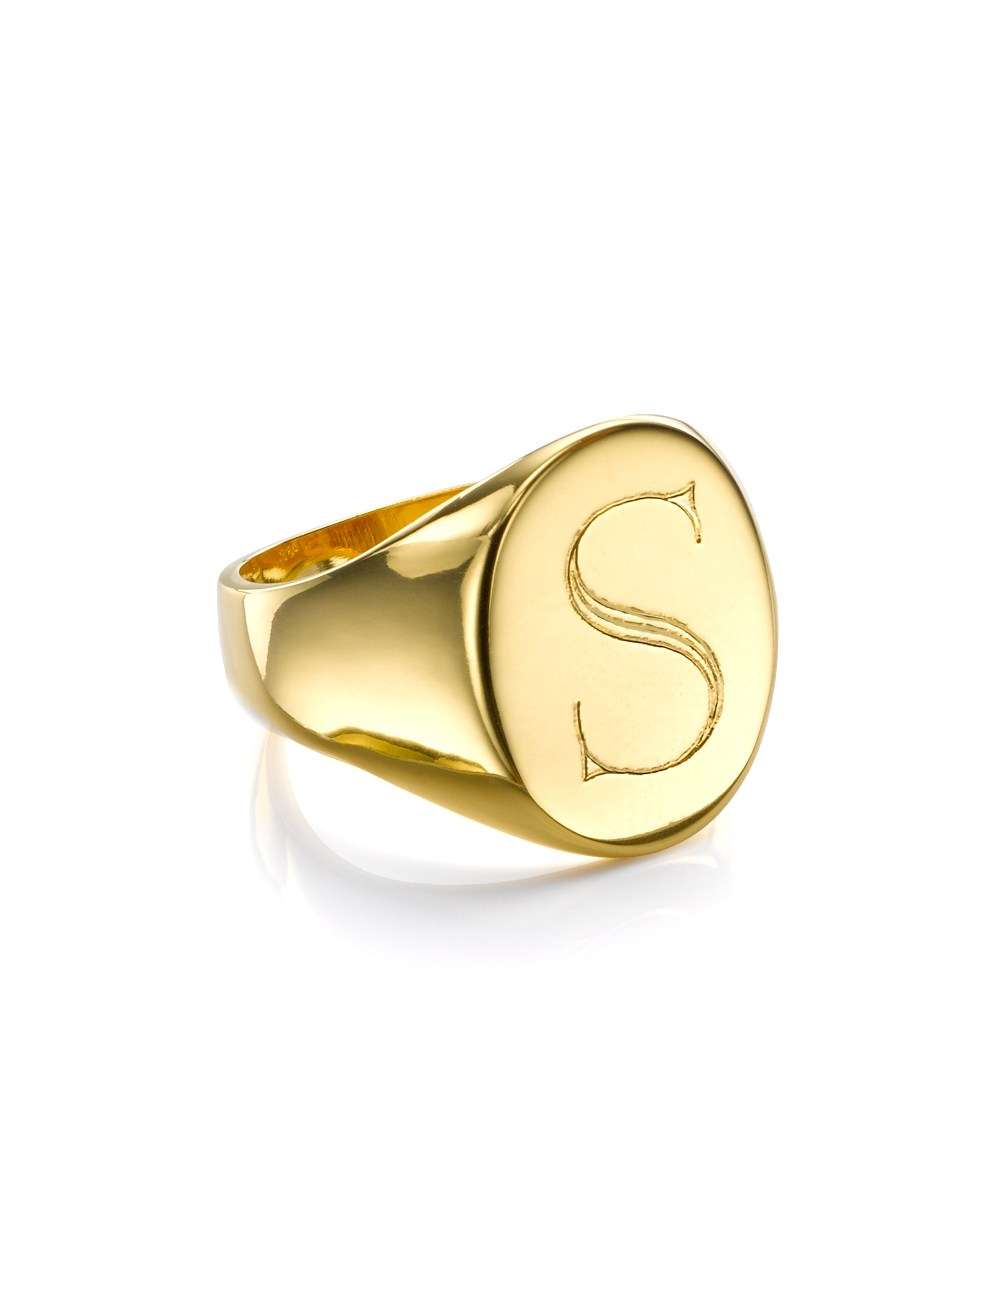 Gold Signet Ring Meaning